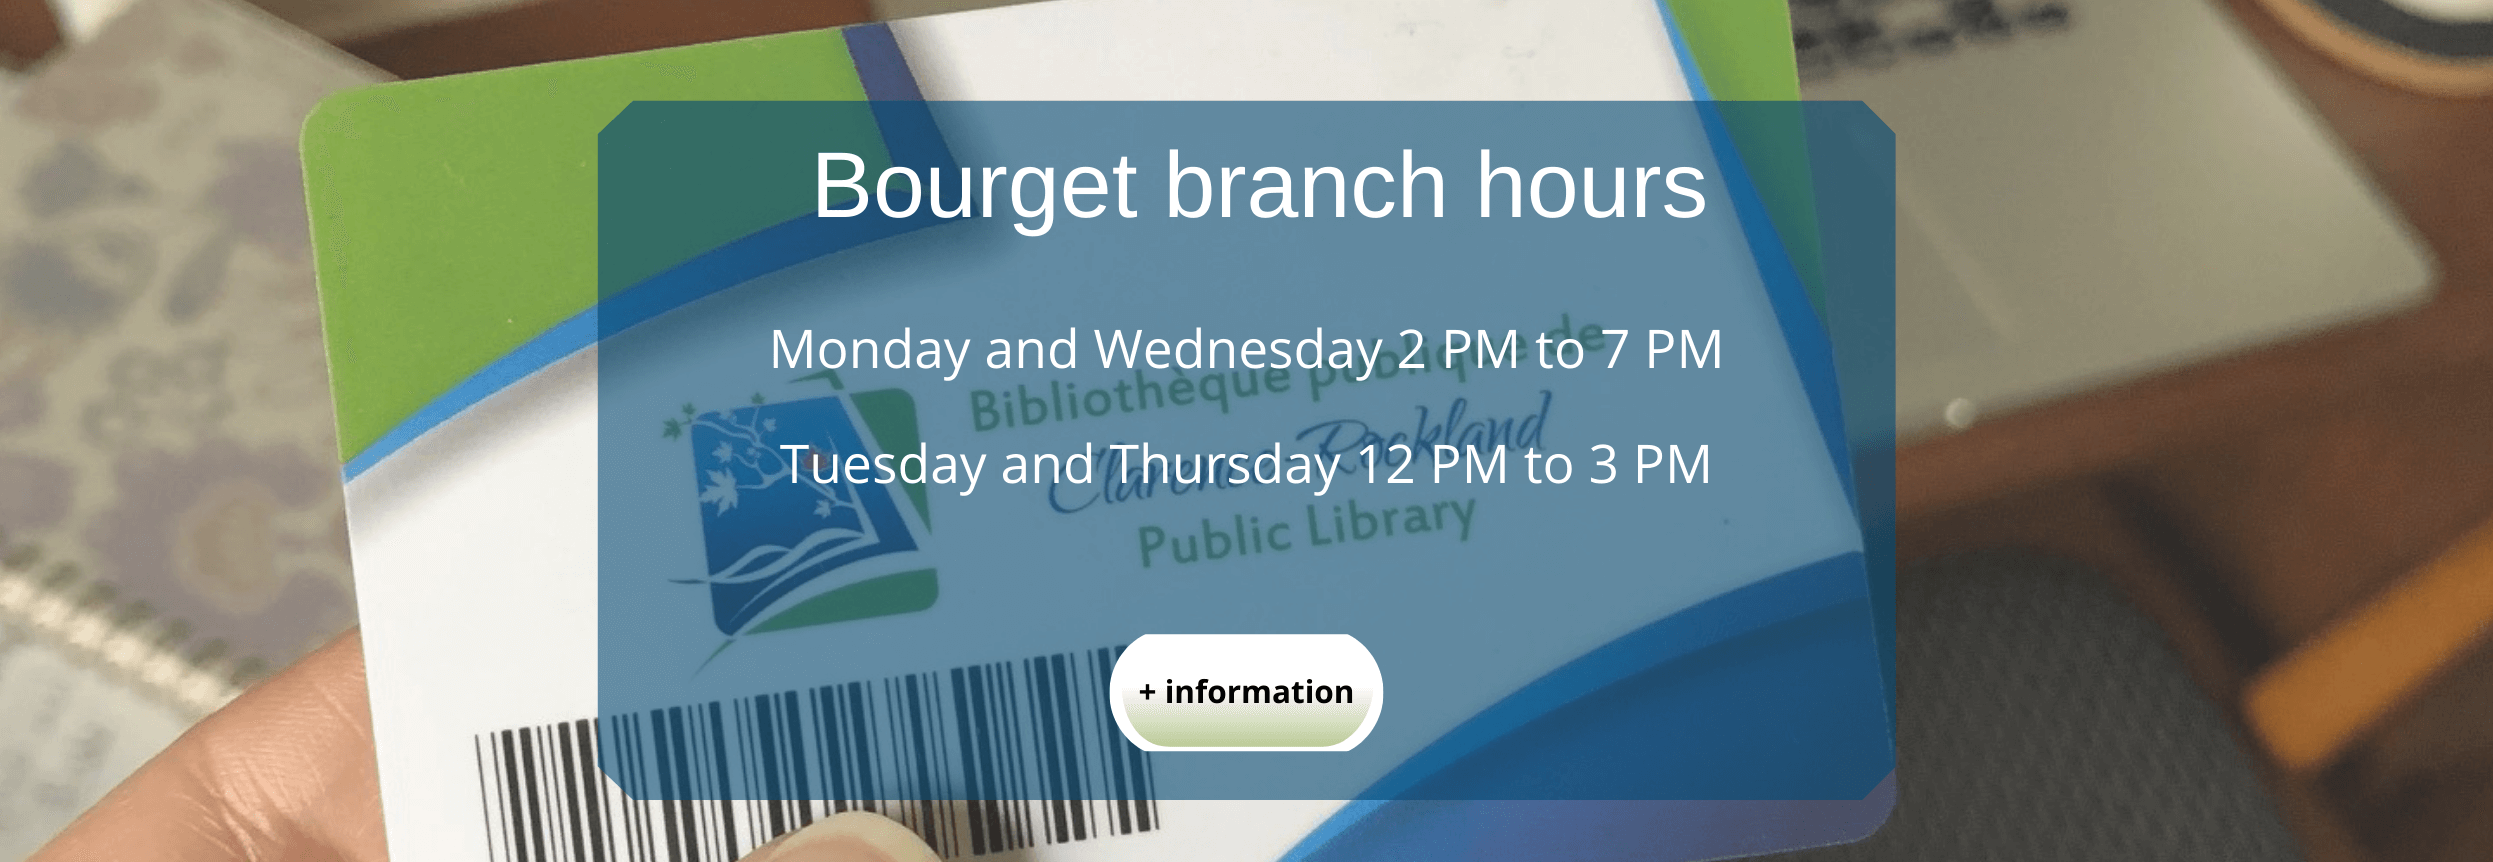 Bourget branch hours